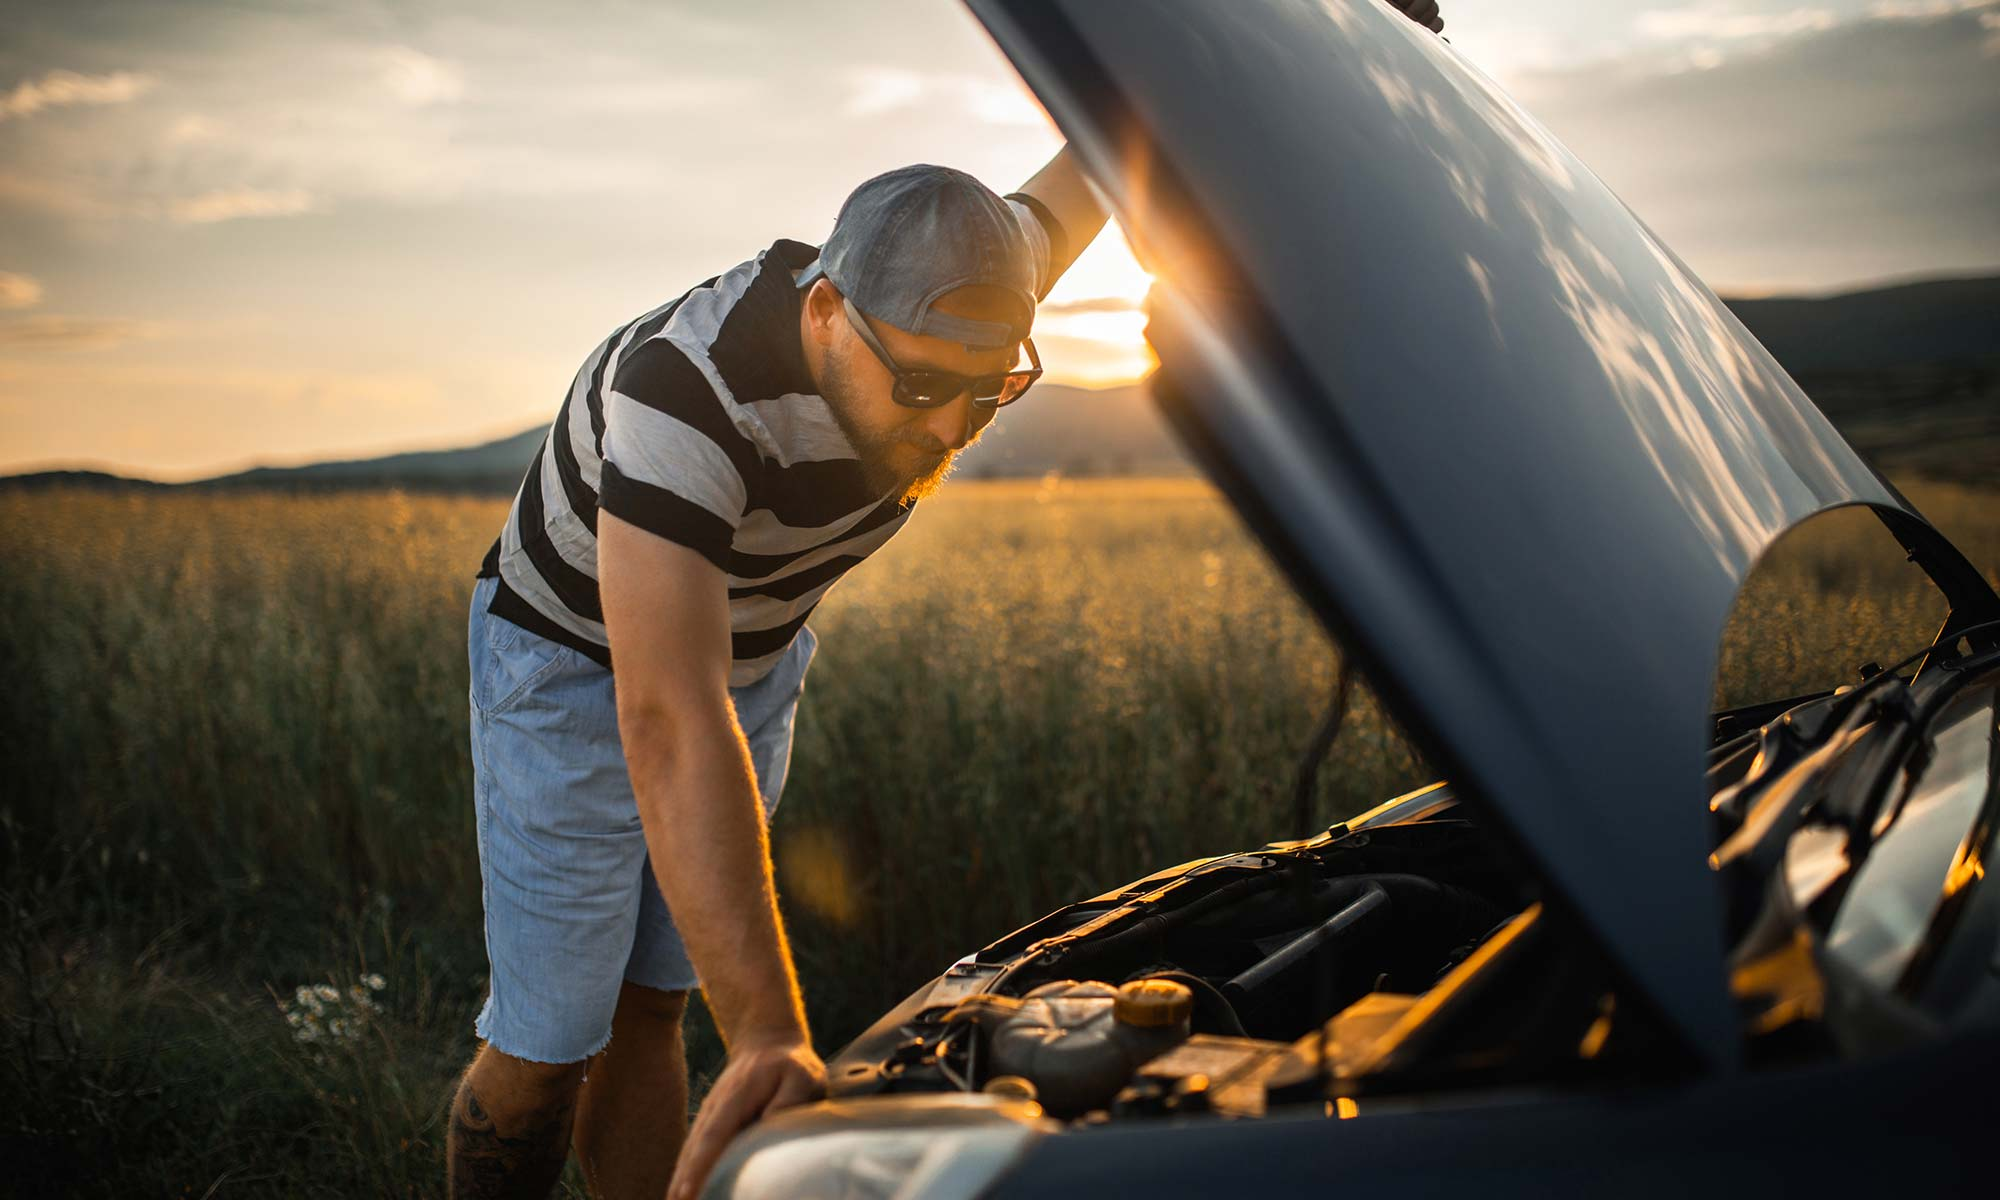 A young man in shorts and a t-shirt leans over the open hood of his car.